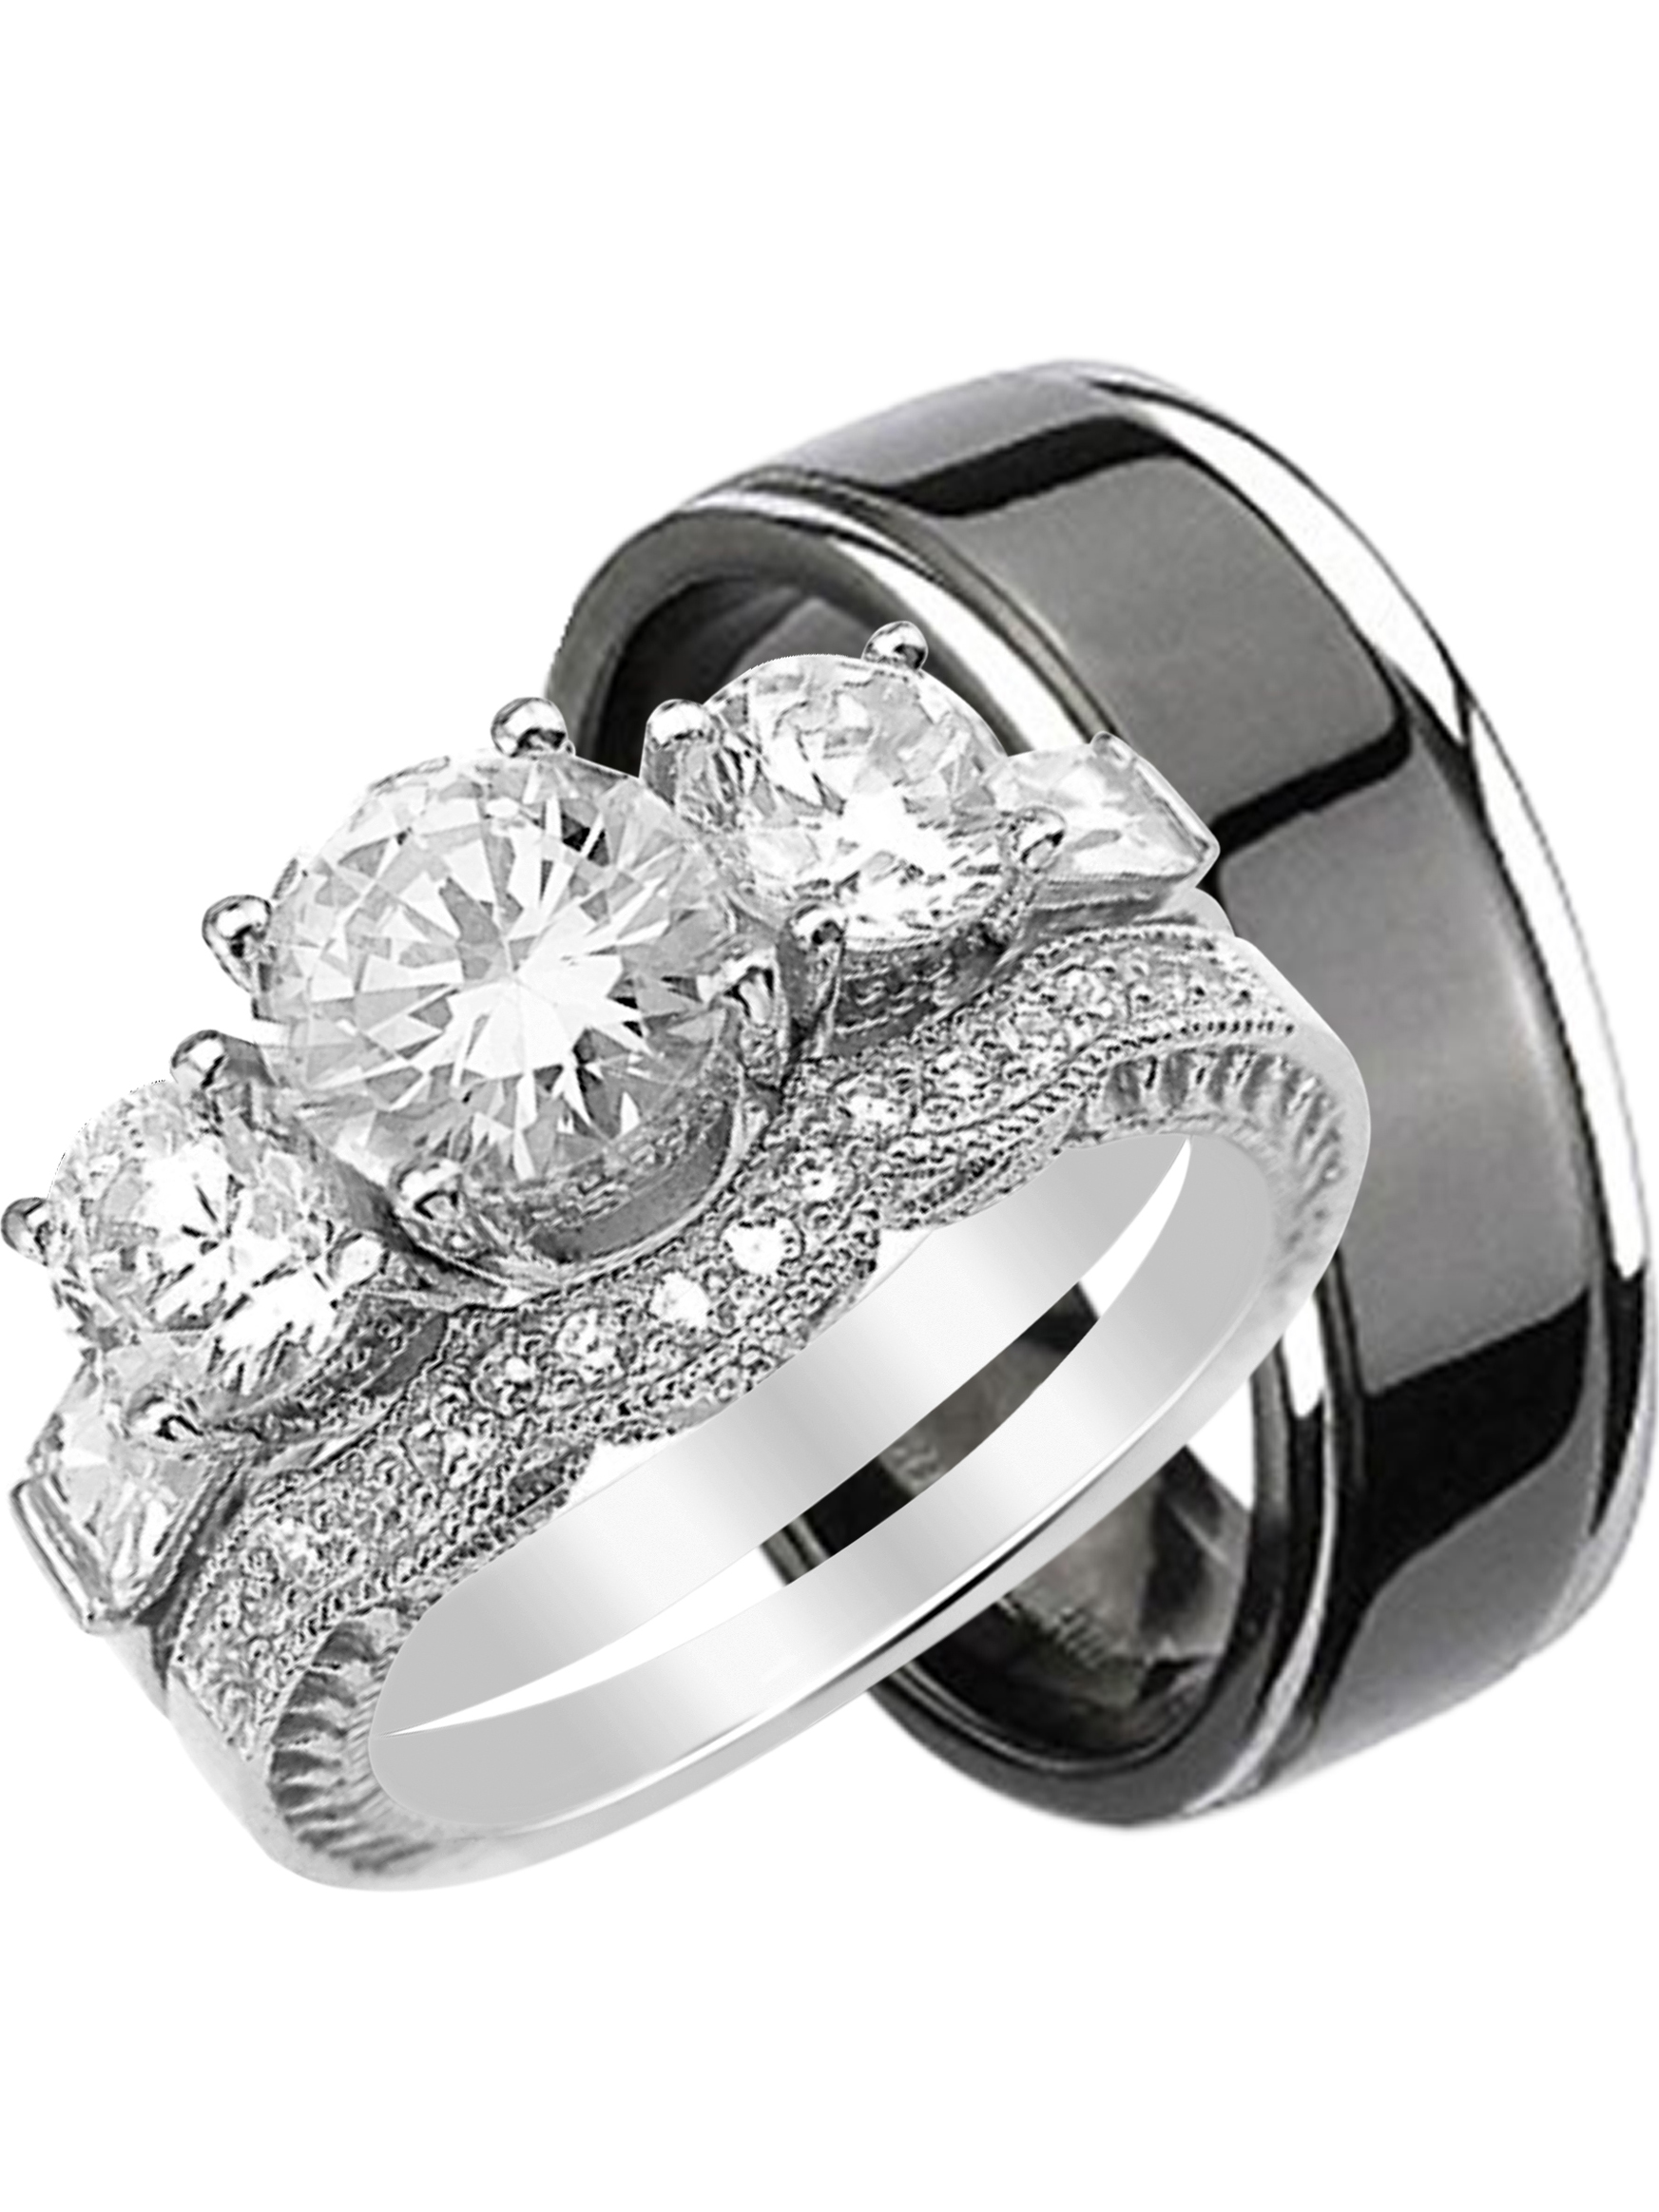 This is a picture of LaRaso & Co - His and Hers 33 Piece Trio Sterling Silver Black Titanium Wedding Band Engagement Ring Set - Walmart.com